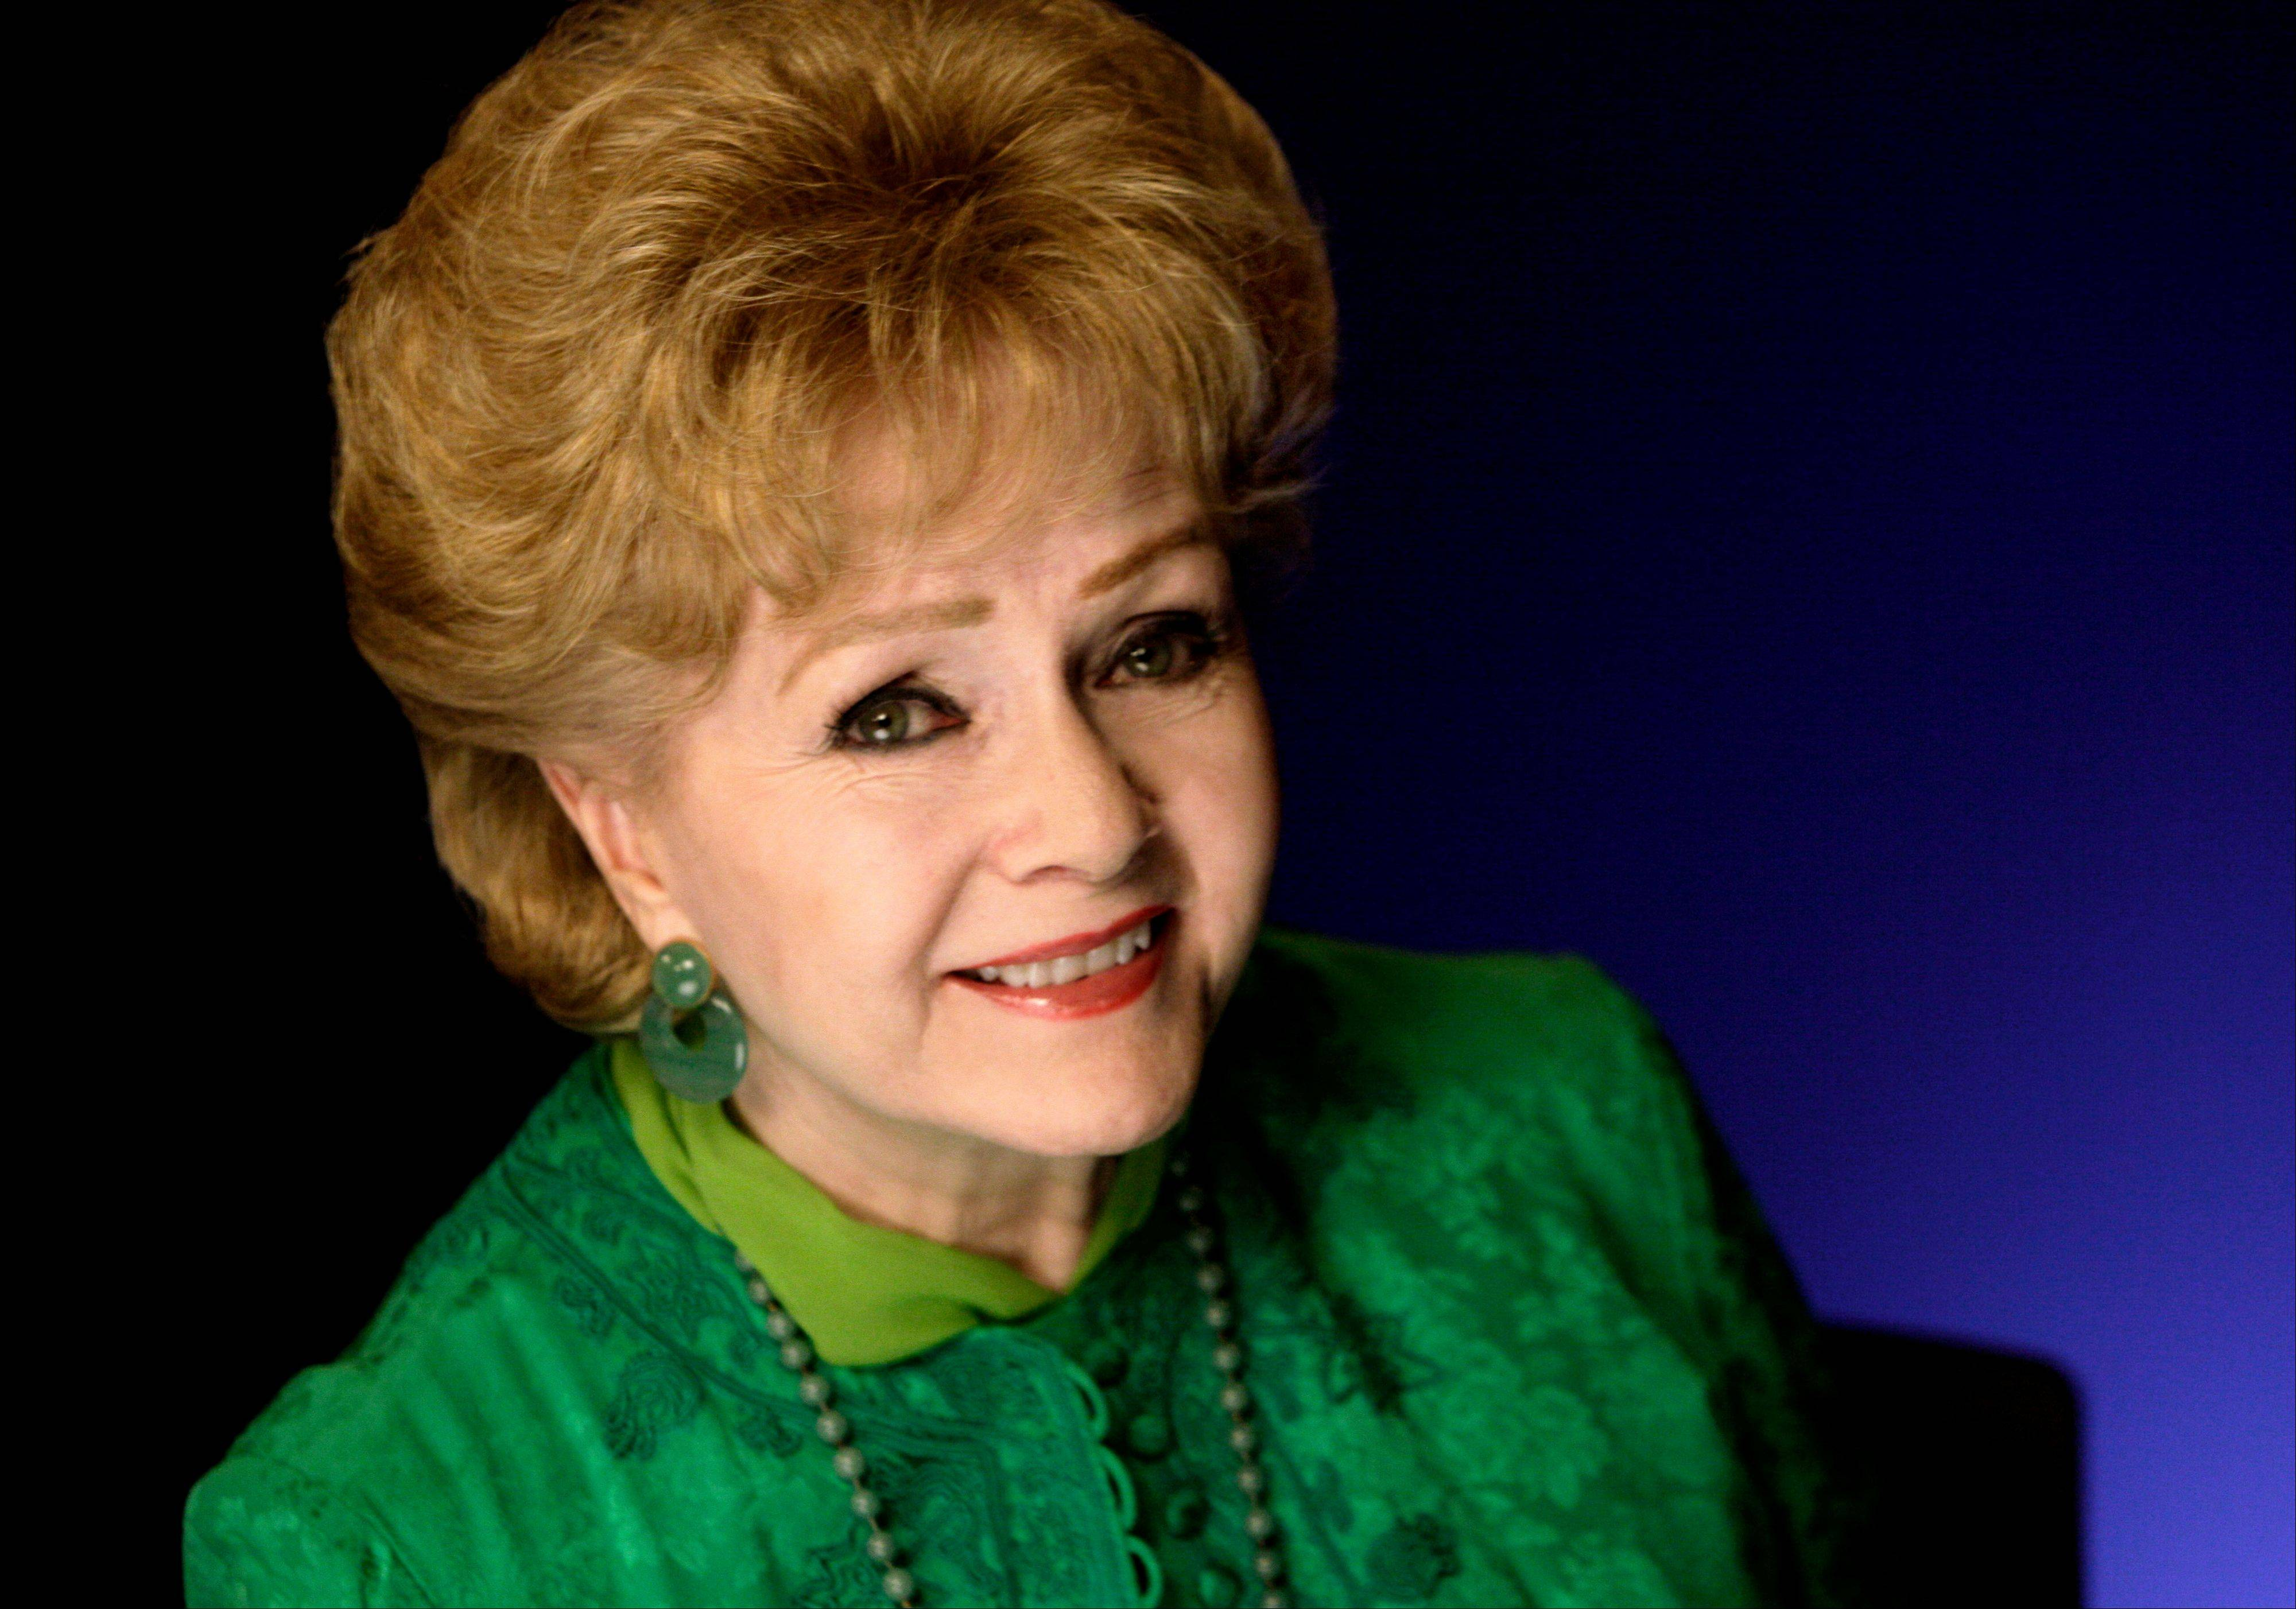 Debbie Reynolds had to be hospitalized for an adverse reaction to a medication and was canceling several upcoming performances.